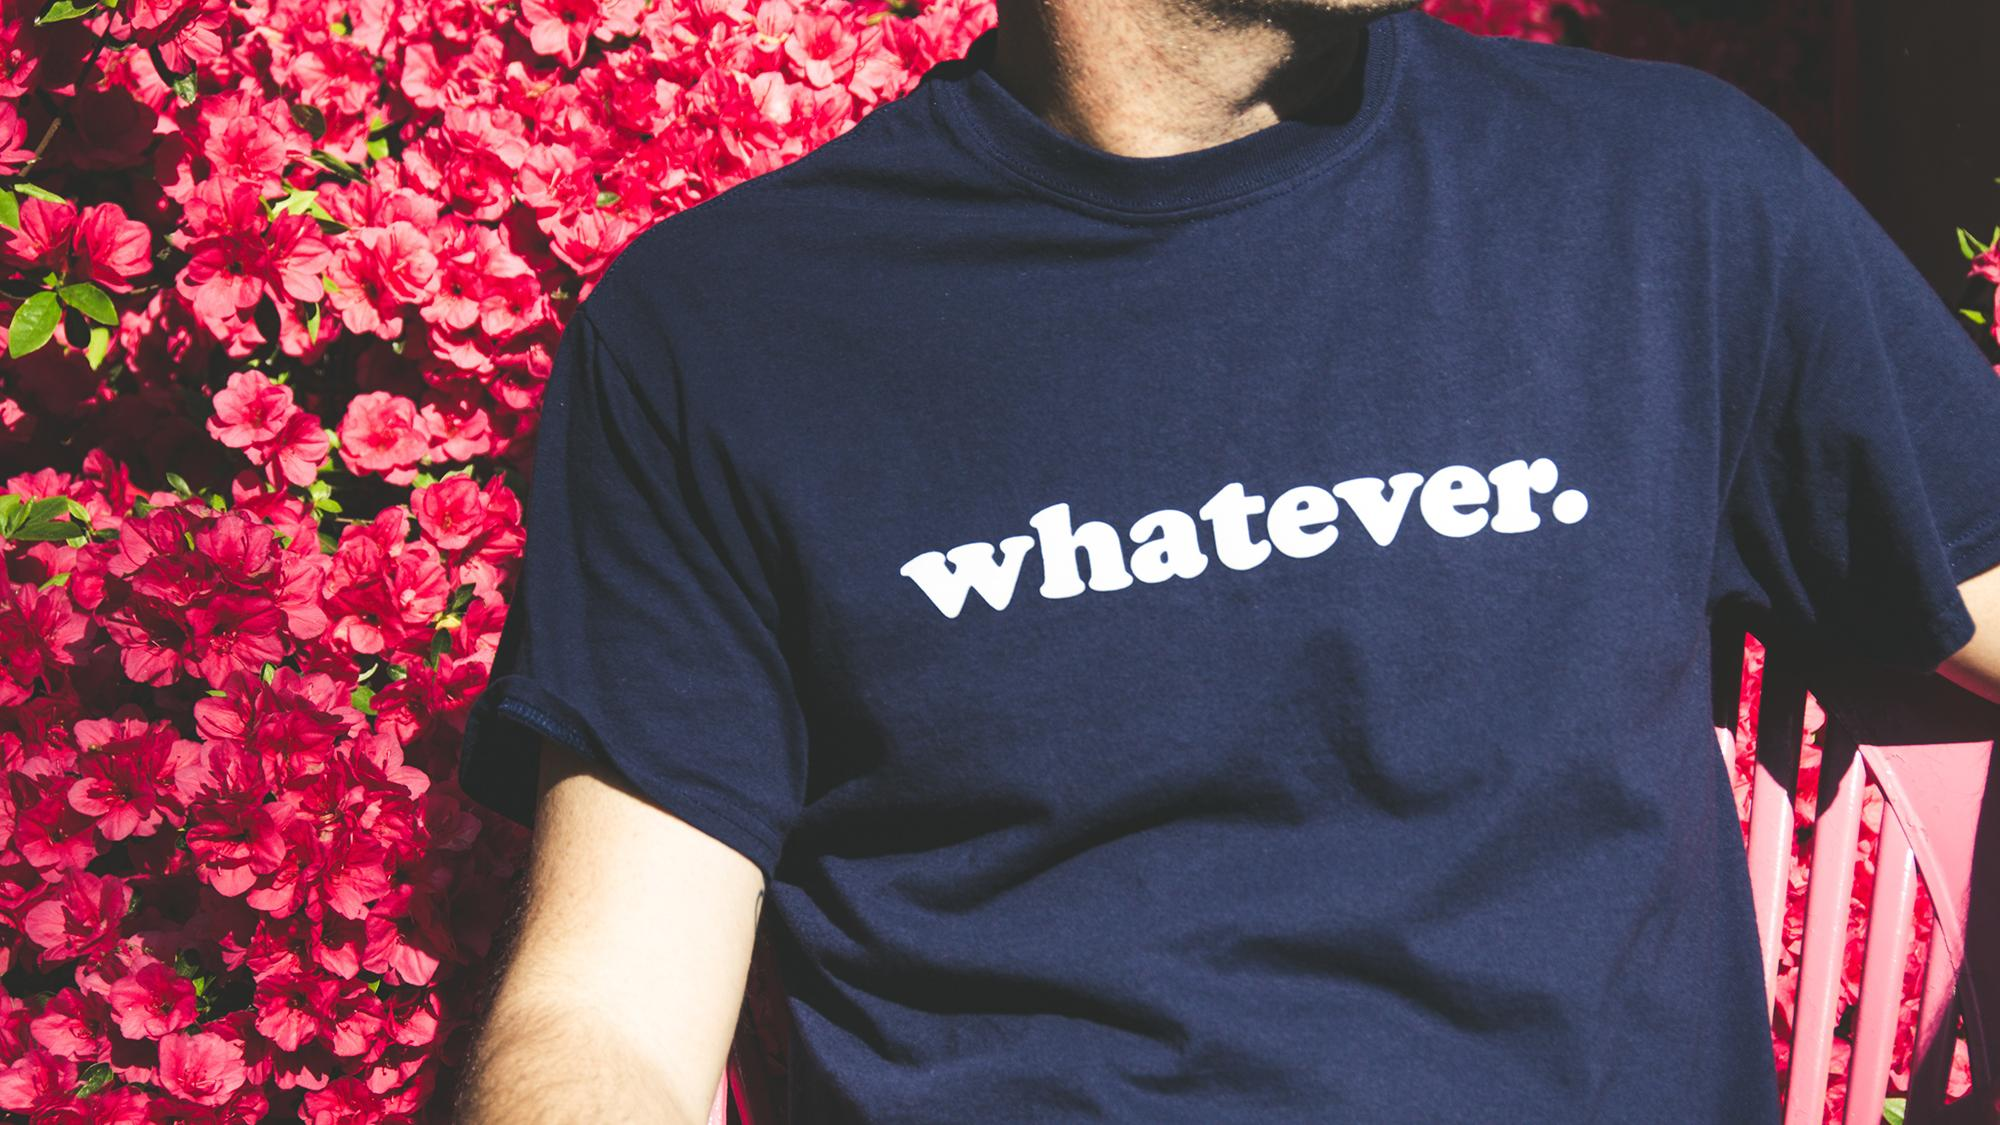 person with t-shirt that says 'whatever' on it